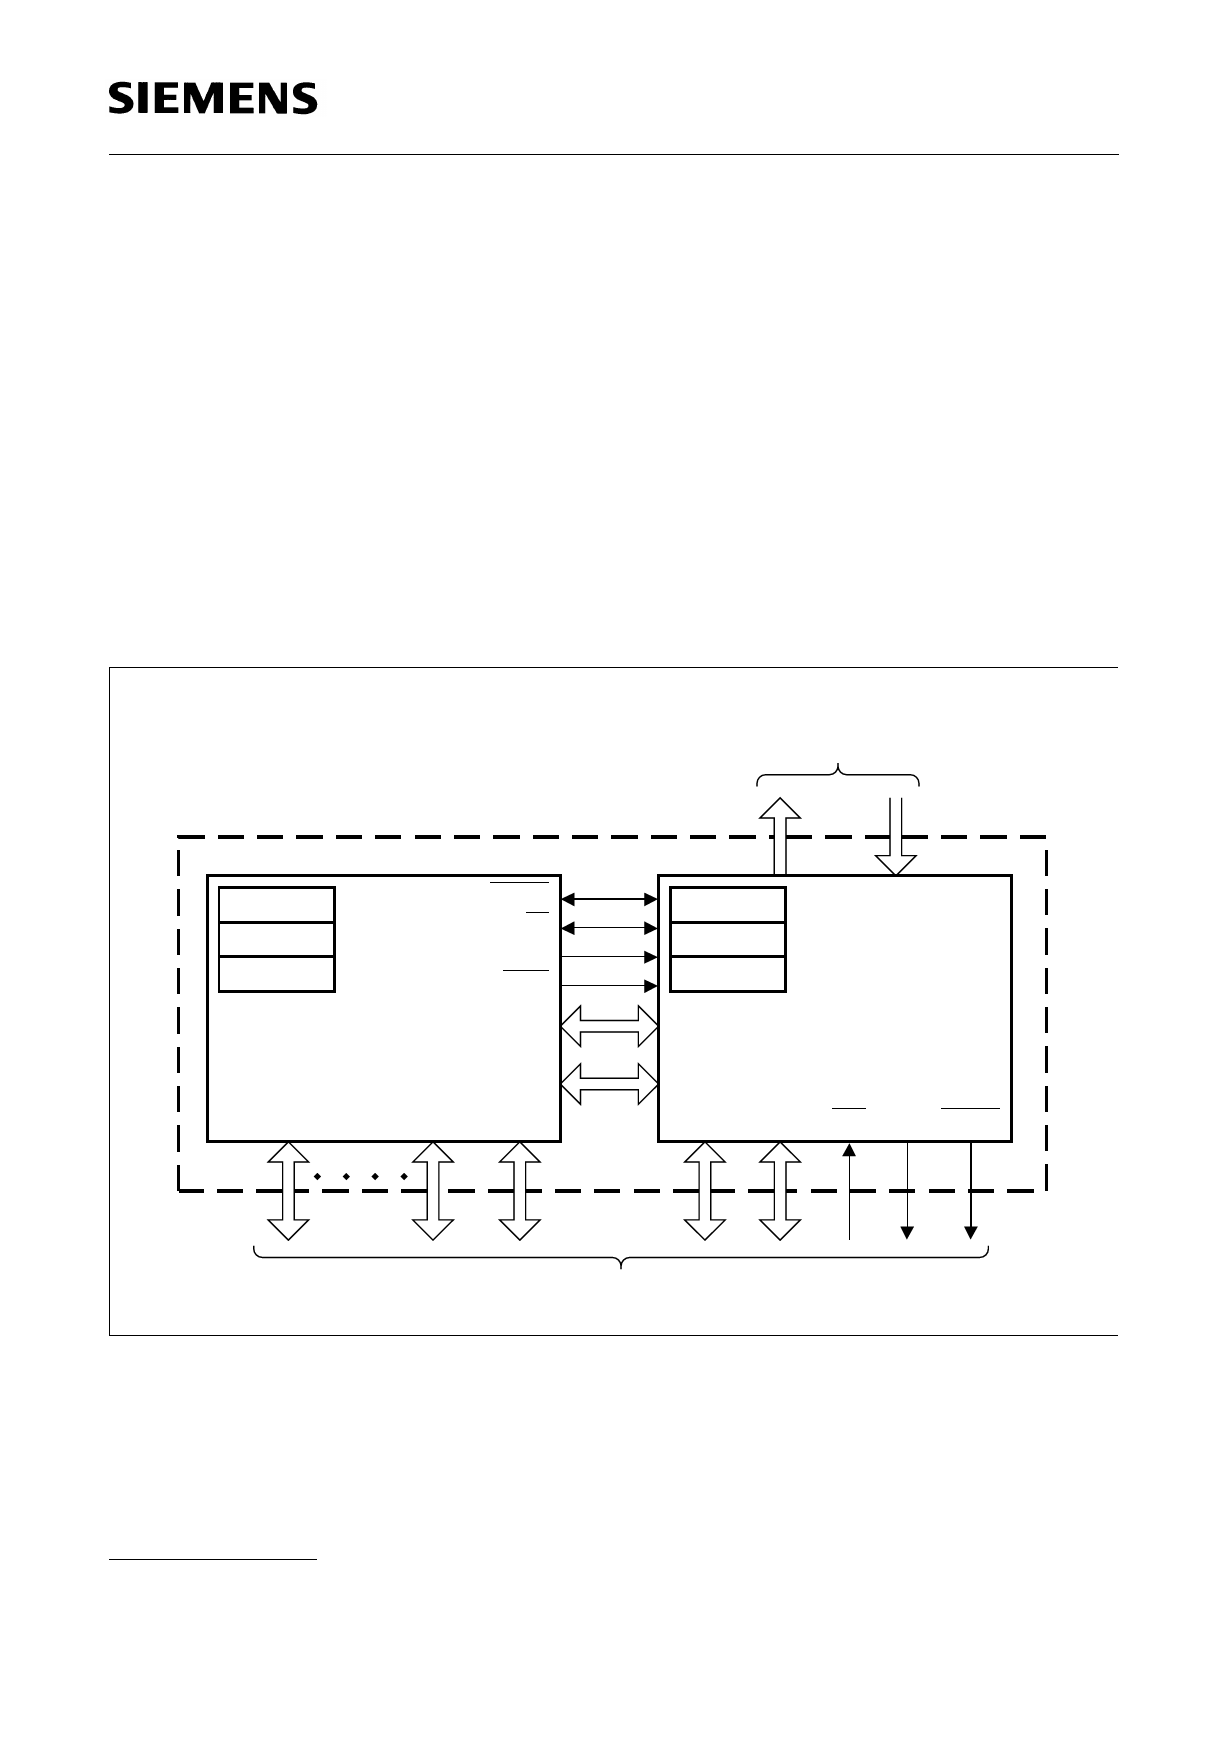 Lm8andatasheet Mpc17a50 Datasheet Lm567 Ne567 Se567 To Transfer Informations About The Programm Execution And Data